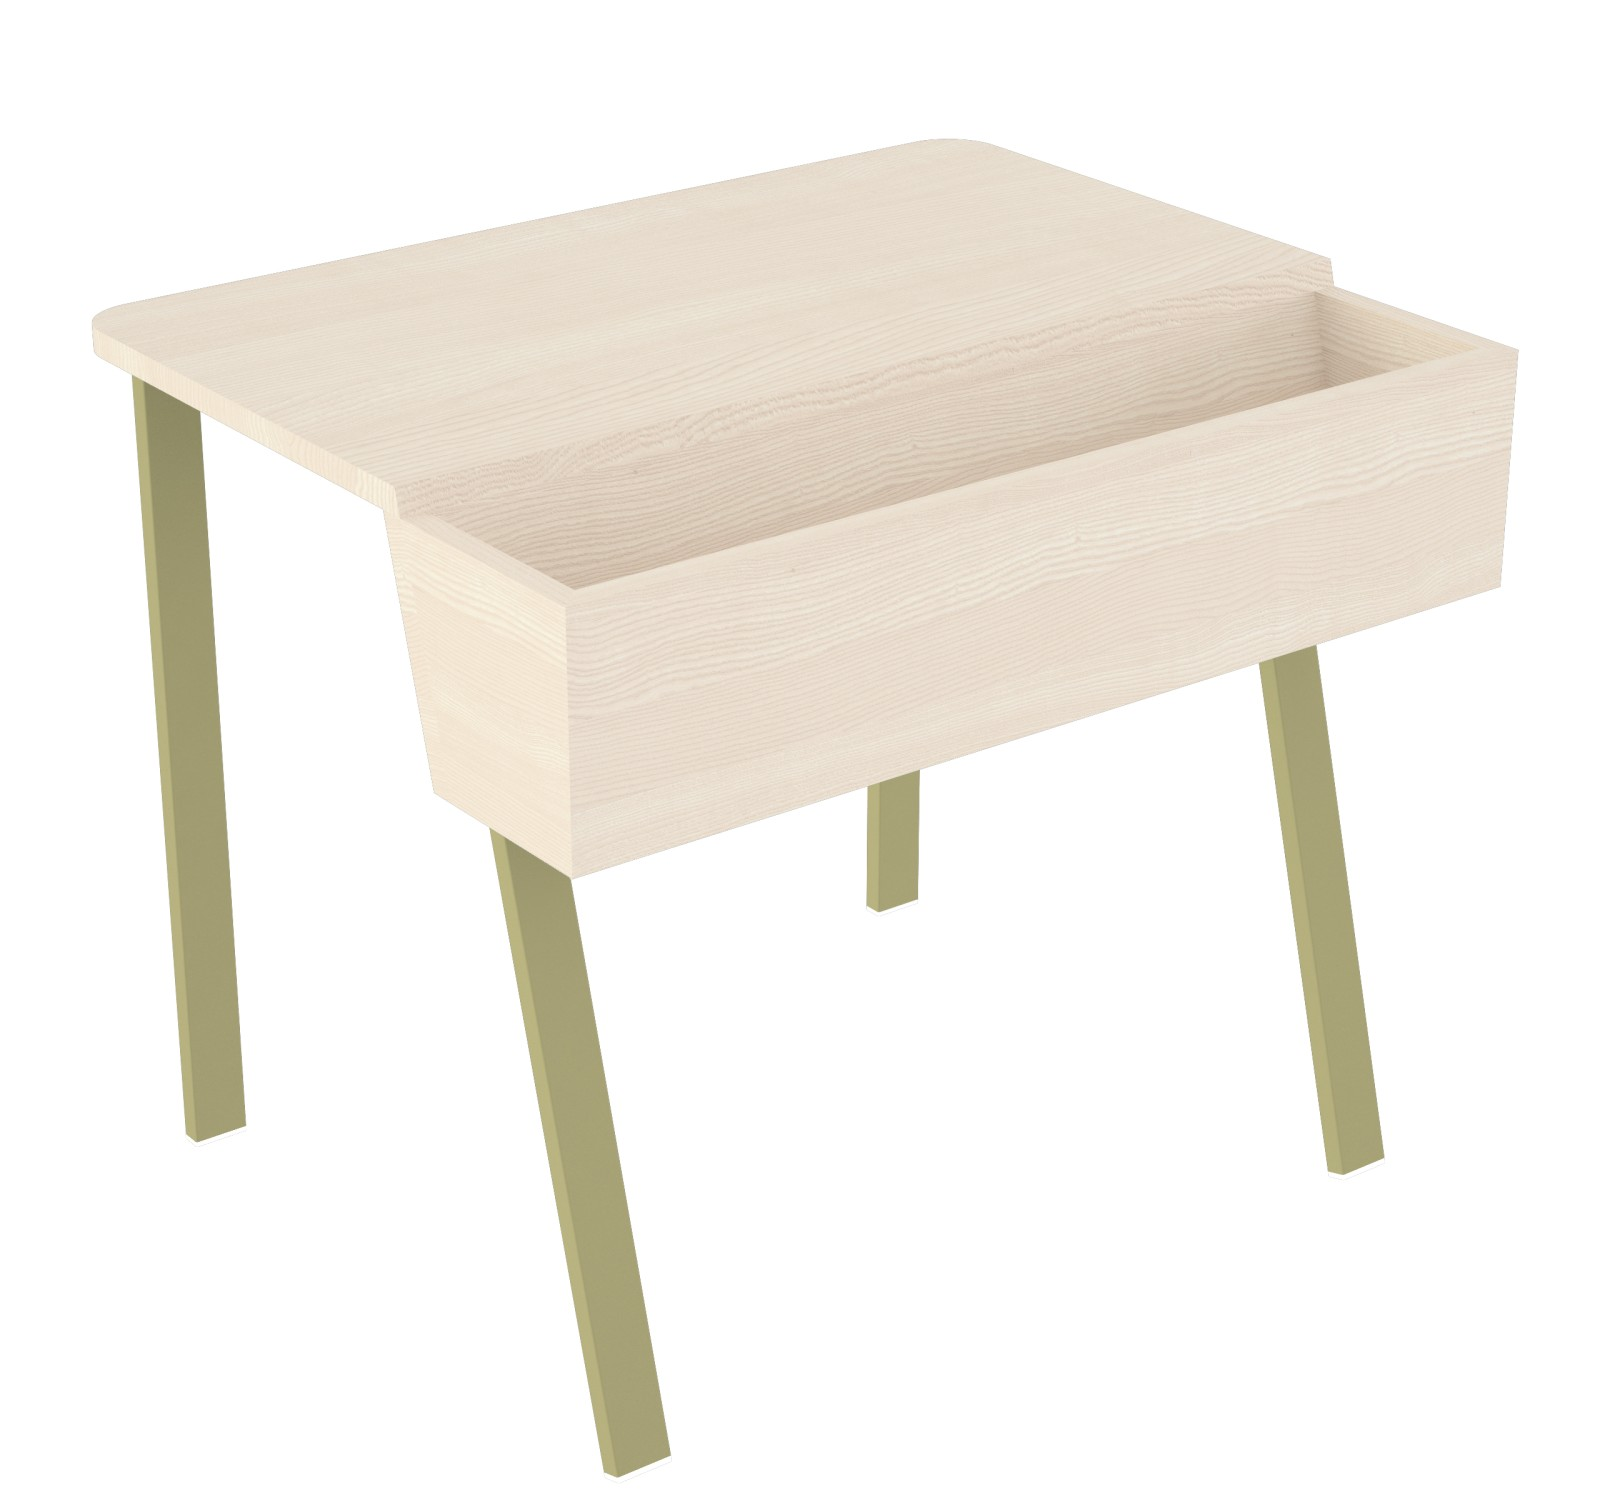 Wing Desk for One Wing Desk for One-white stained solid ash tabletop-olive green frame